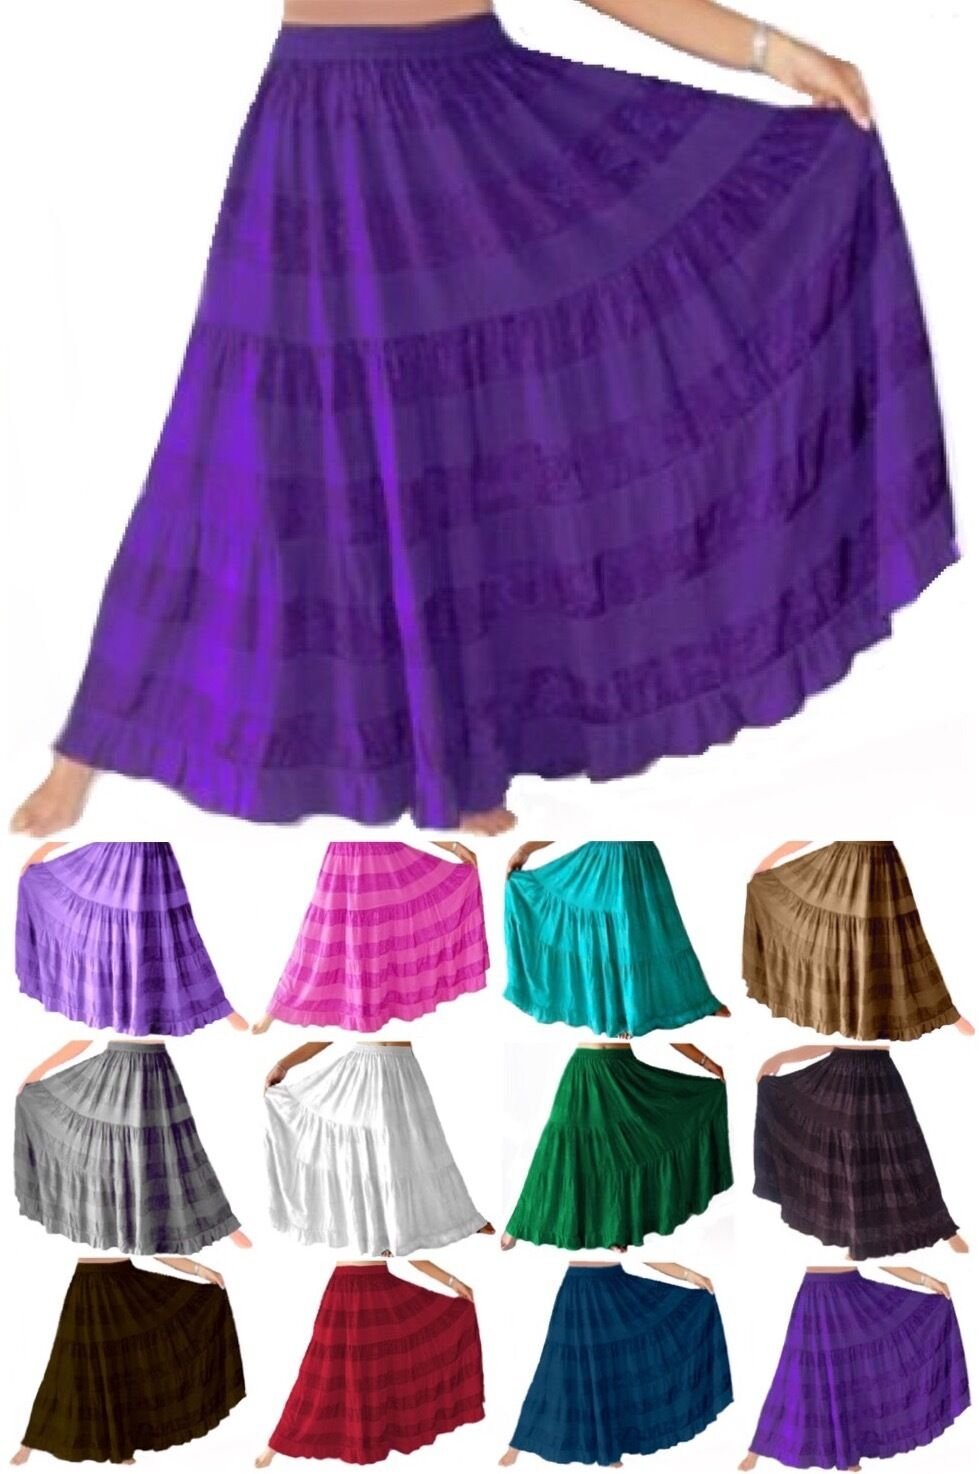 LotusTraders FASHION PLUS MAXI SKIRT TIERED ELASTIC WAIST MADE TO ORDER A603